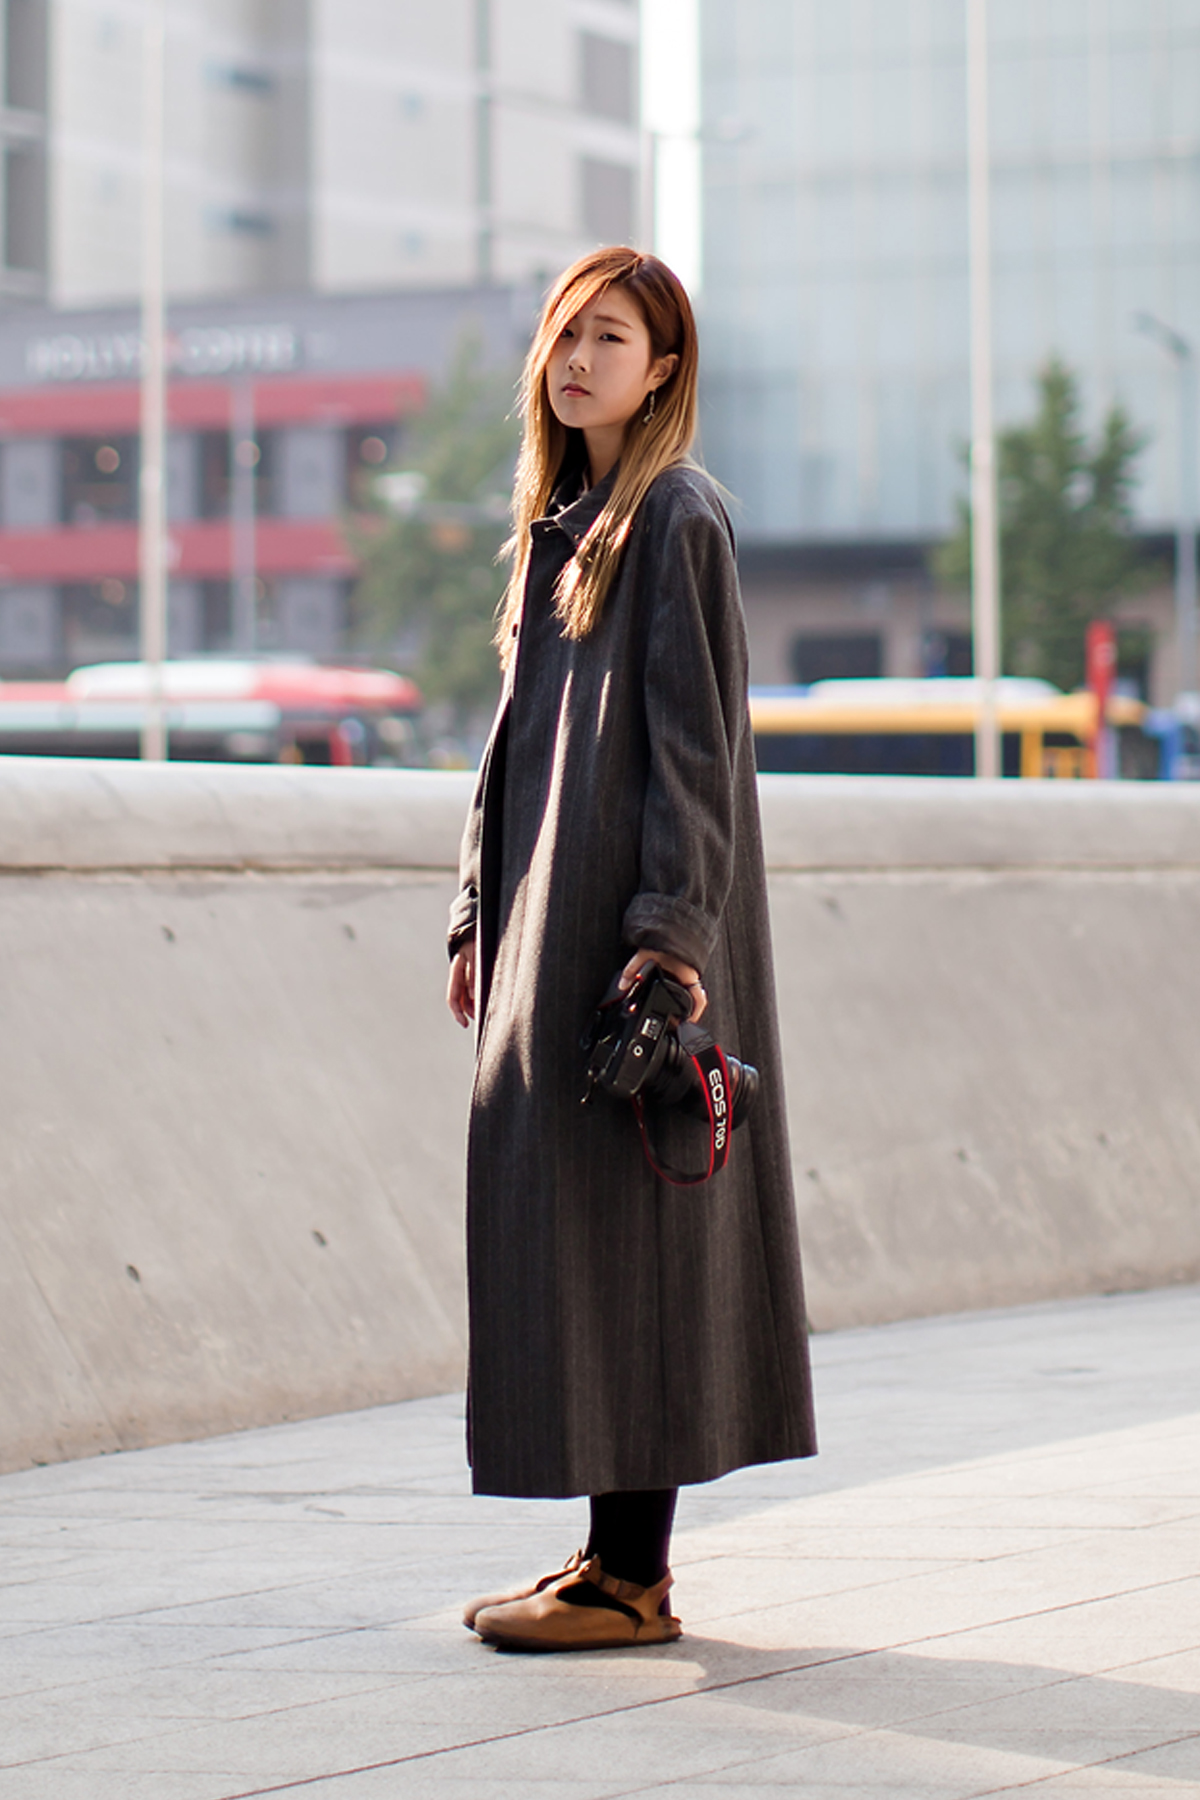 On the street… Kim Seola Seoul fashion week 2016 SS